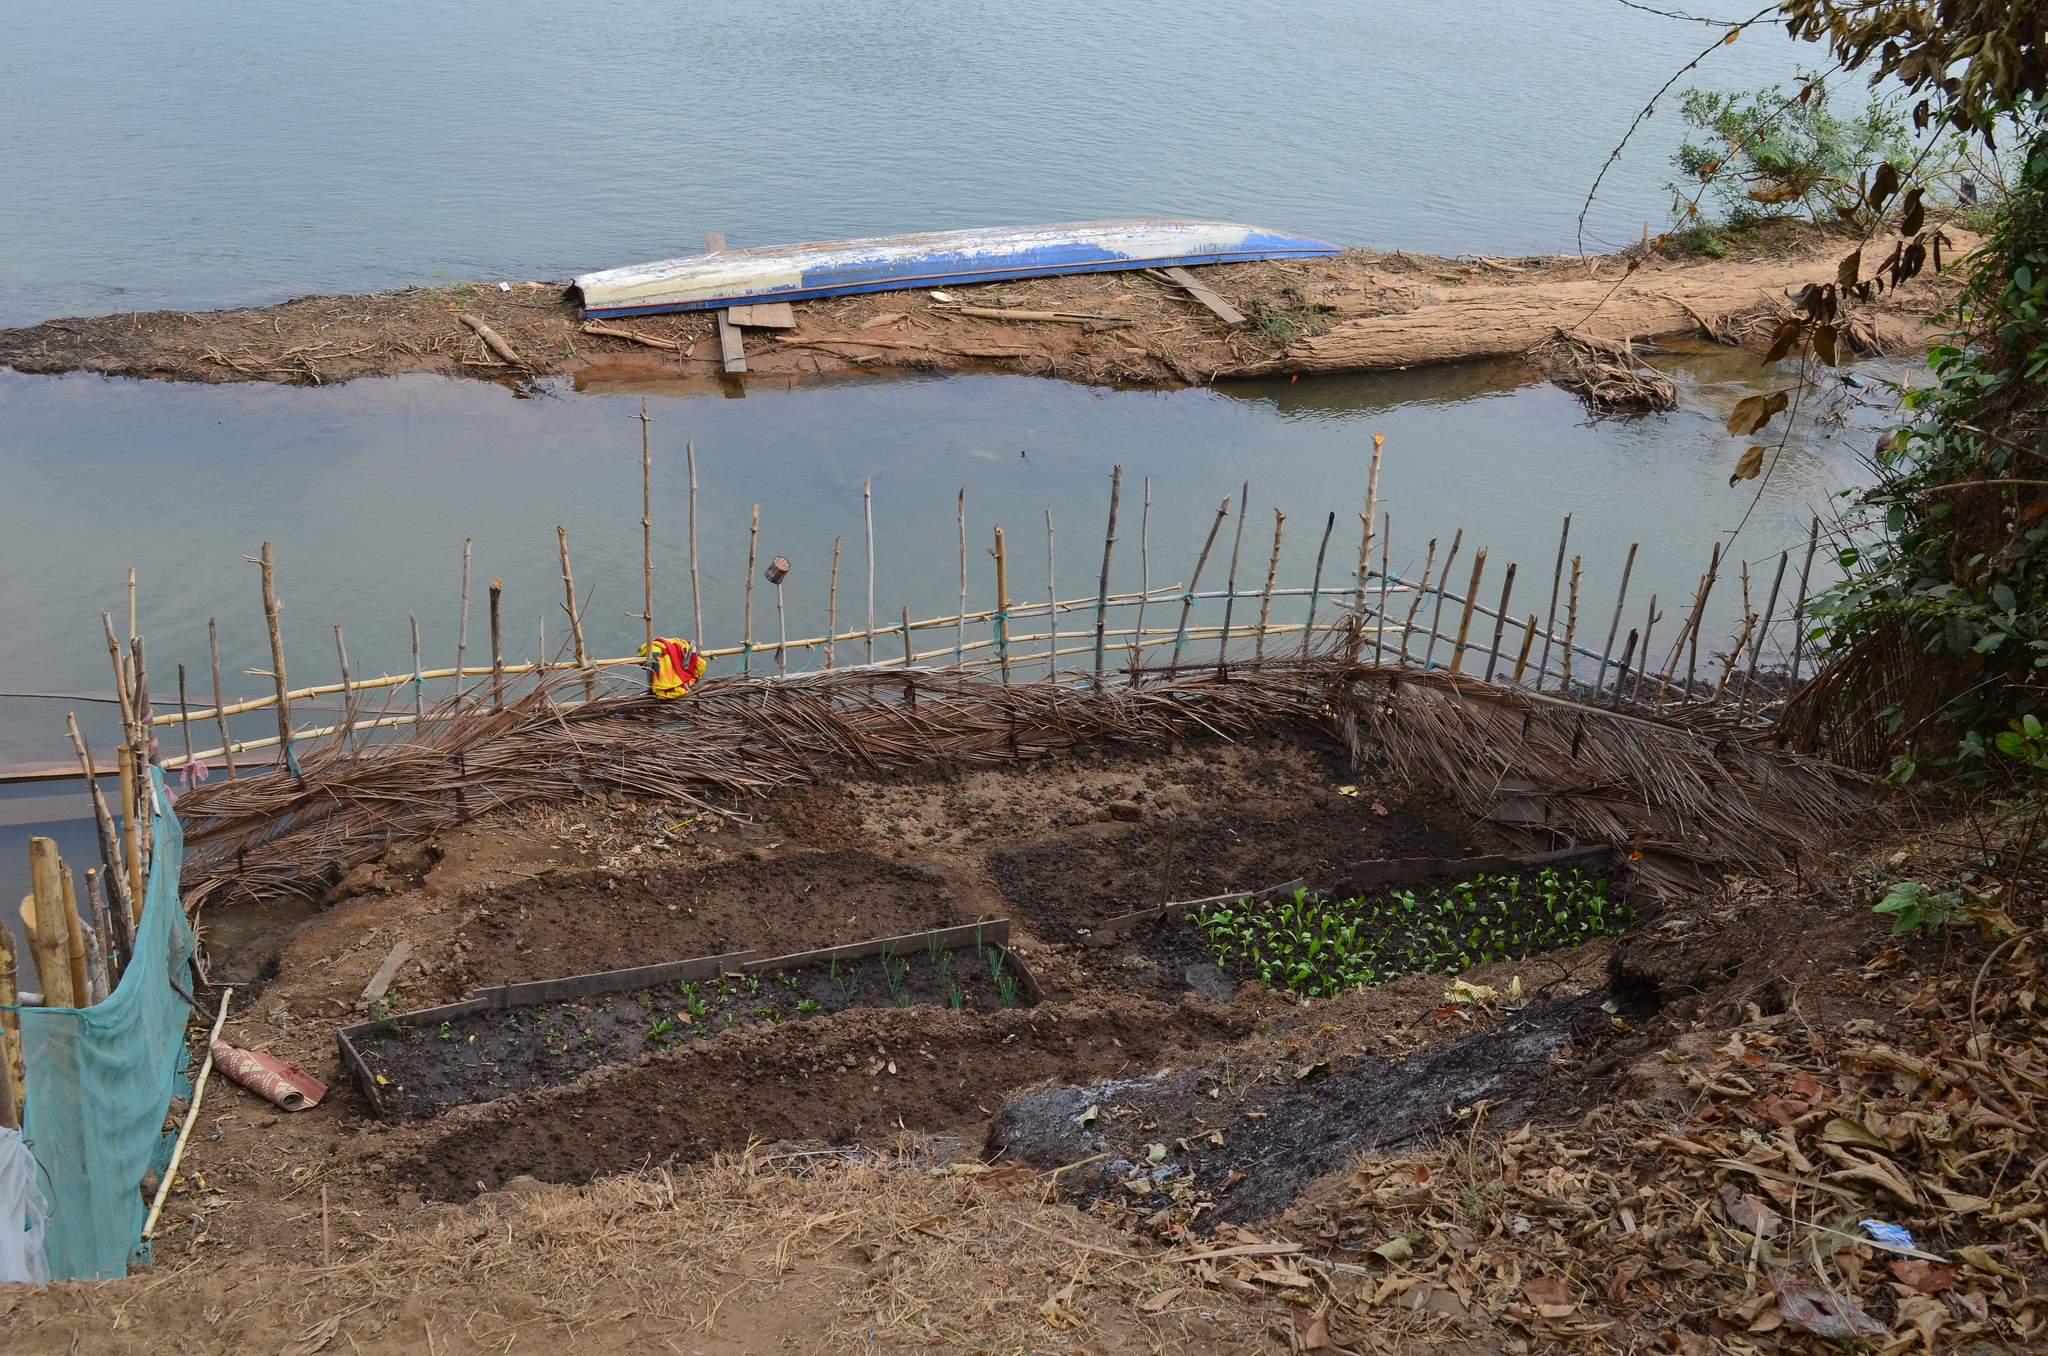 Riverbank-gardening-on-site-of-Lower-Sesan2-Dam-photo-by-Intl-Rivers